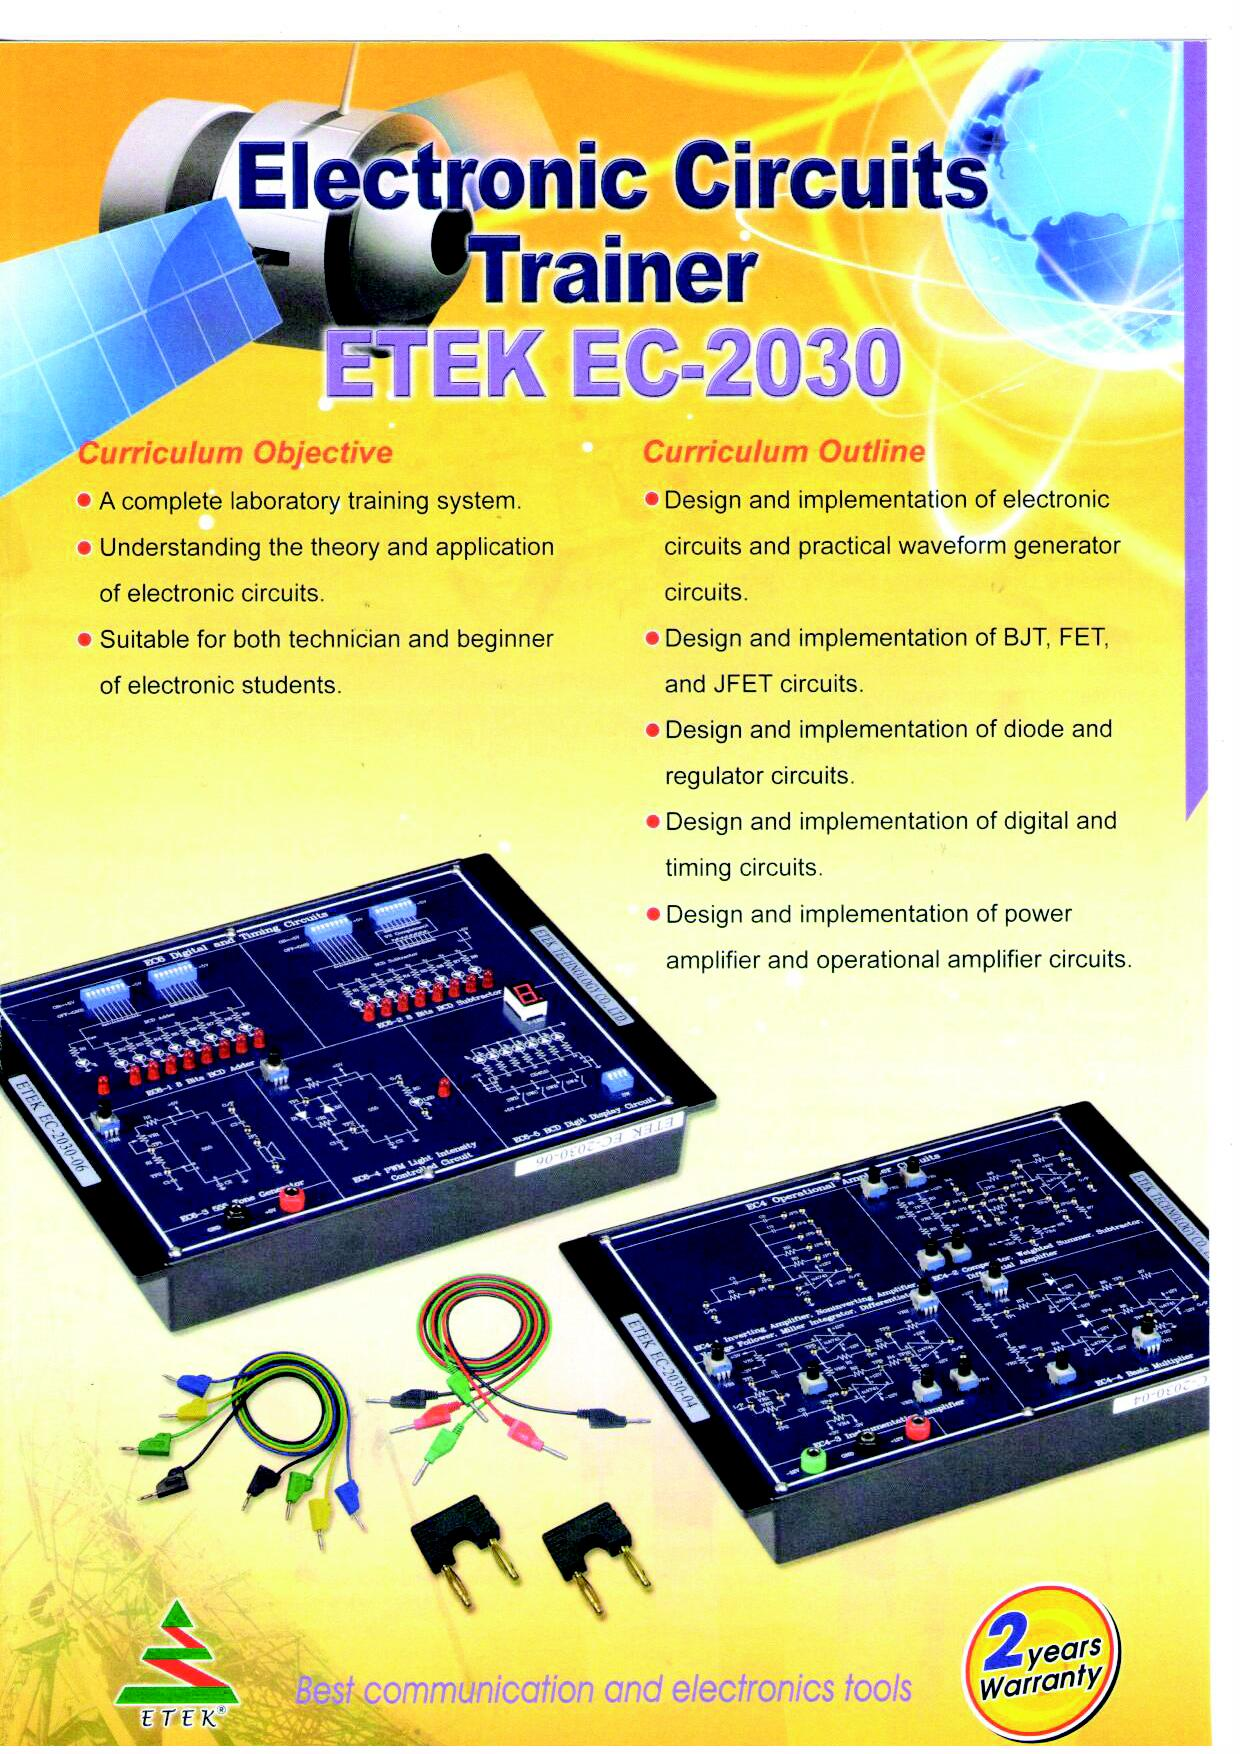 Electronic Circuits Trainer